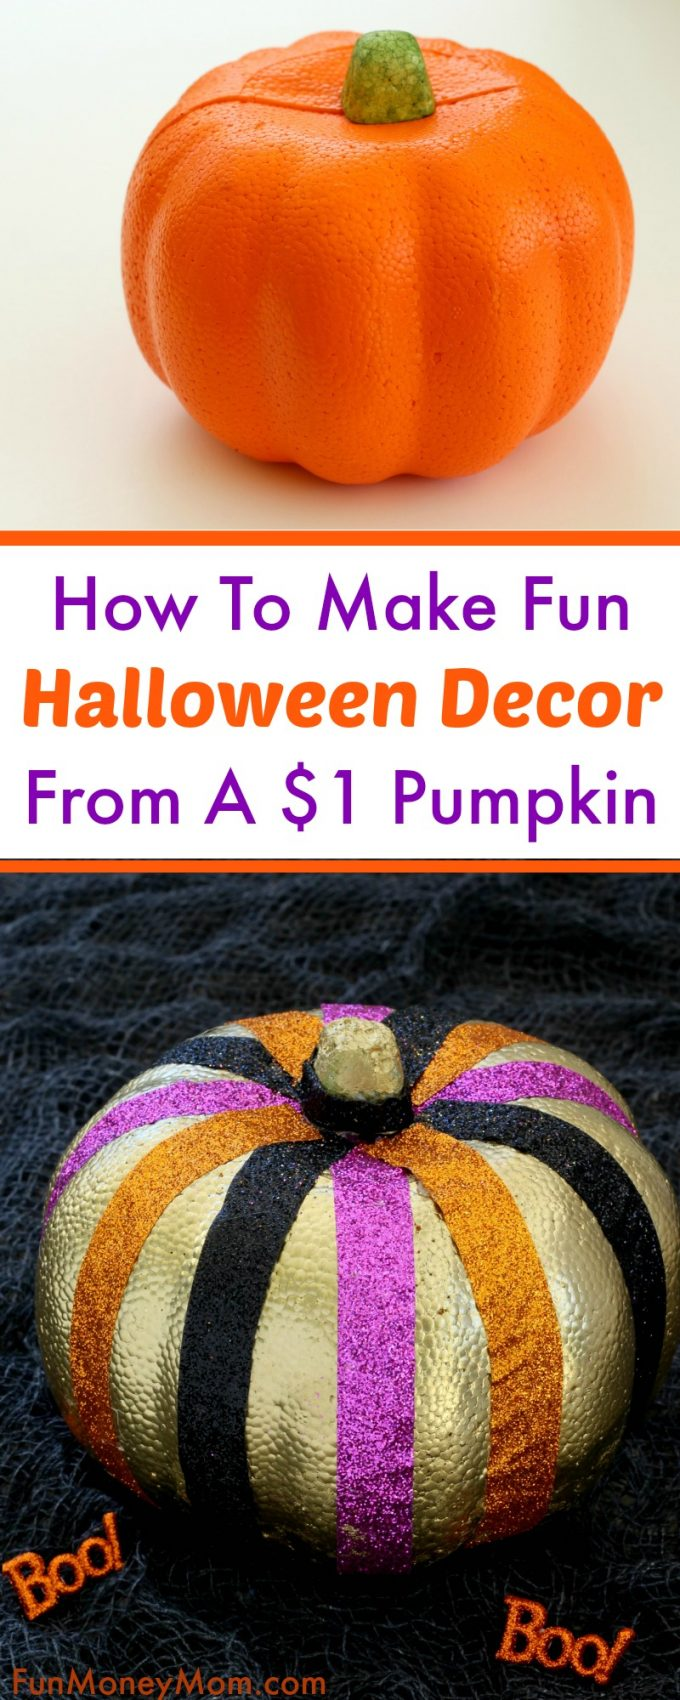 Fun Halloween Decor From A 1 Pumpkin Fun Money Mom